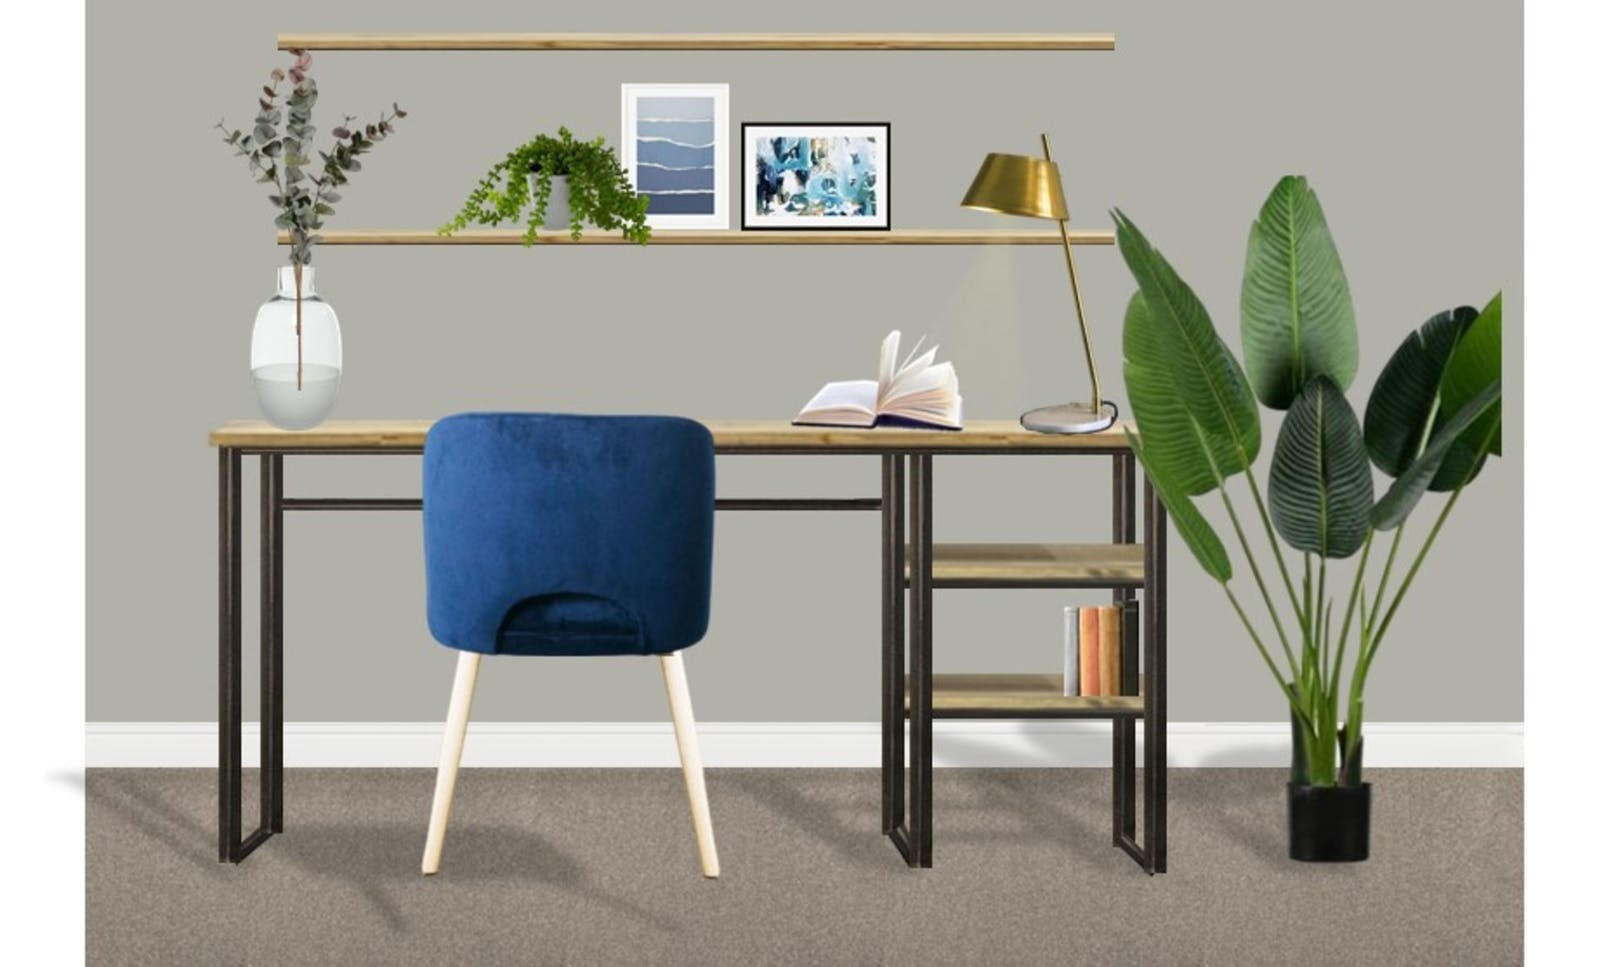 Office render with stylish furniture, a large house plant and a dark blue velvet chair